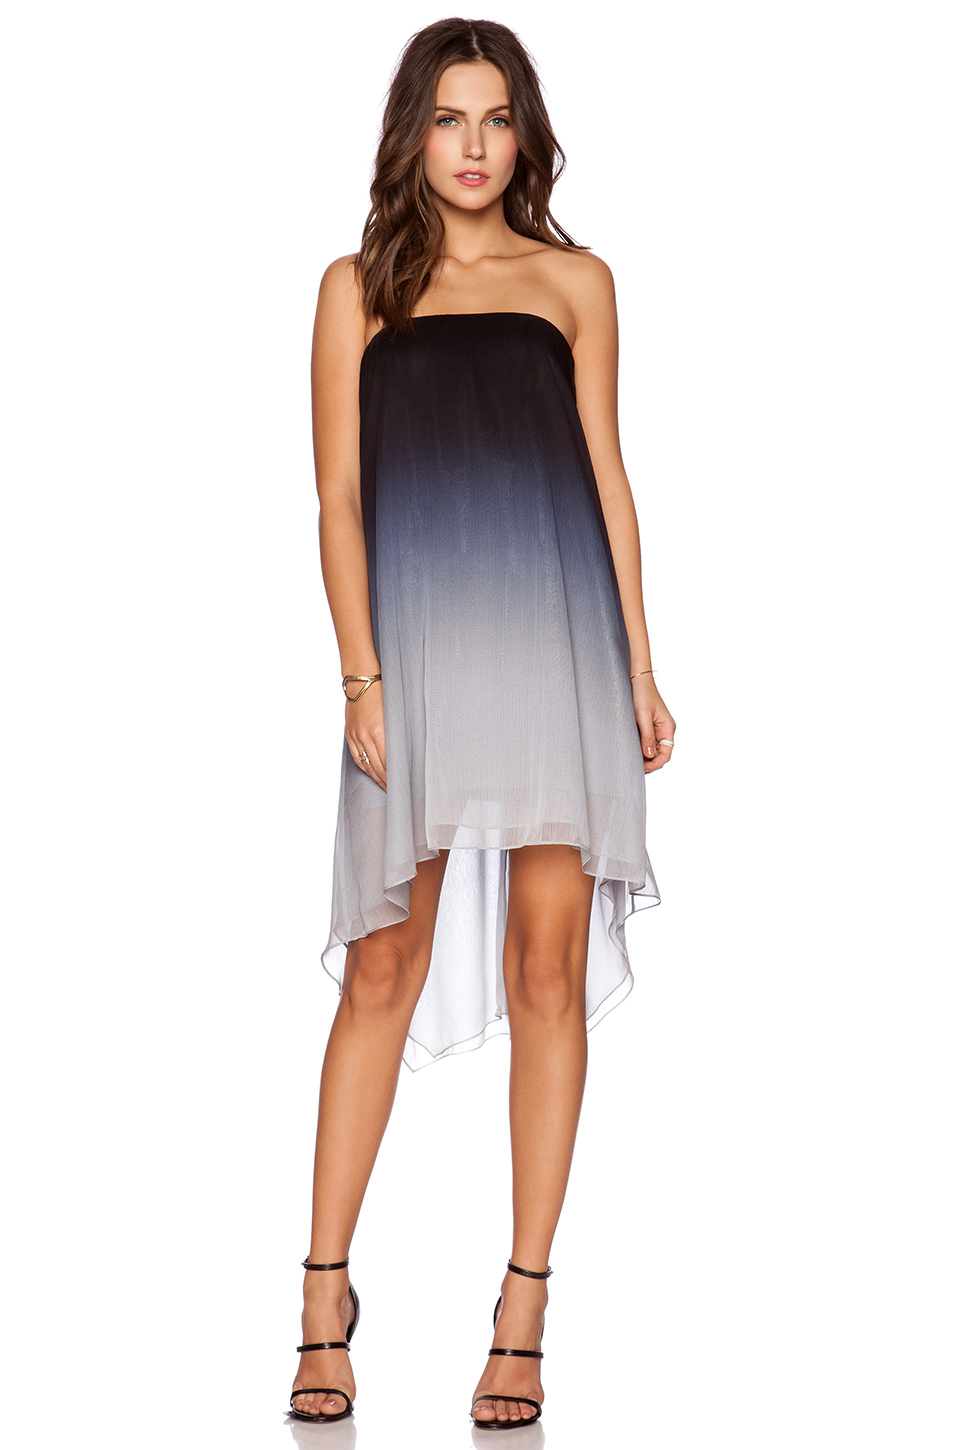 Halston Strapless Ombre Dress in Gray  Lyst